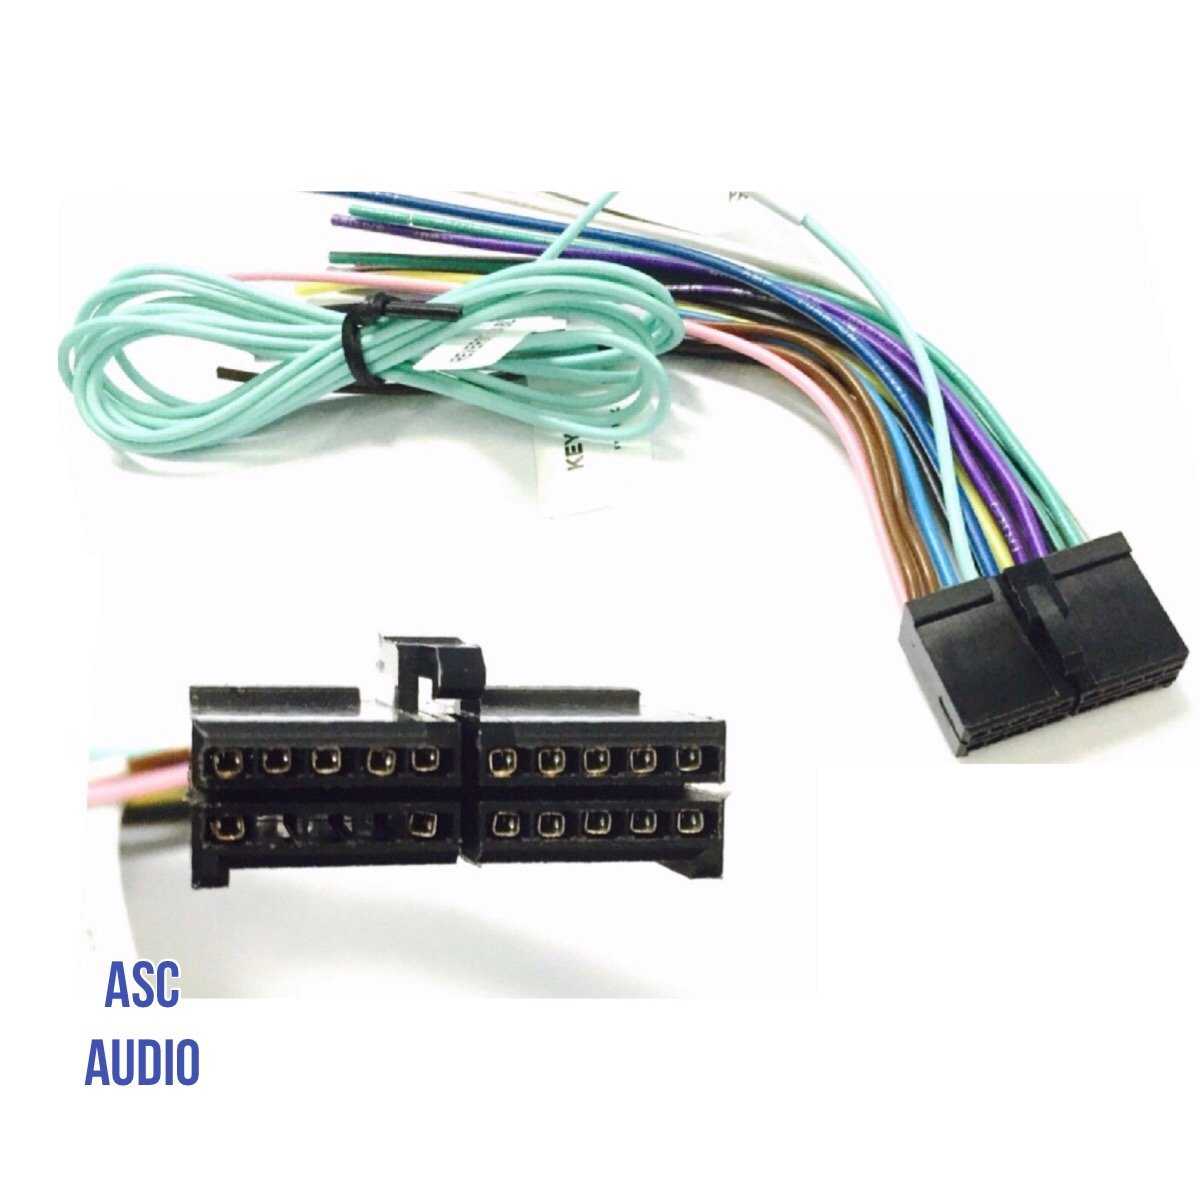 Wiring Harness For Jensen 20 Pin 32 Diagram Images Silverado Sl1200 Amazon Com Asc Audio Car Stereo Radio Wire Uv10